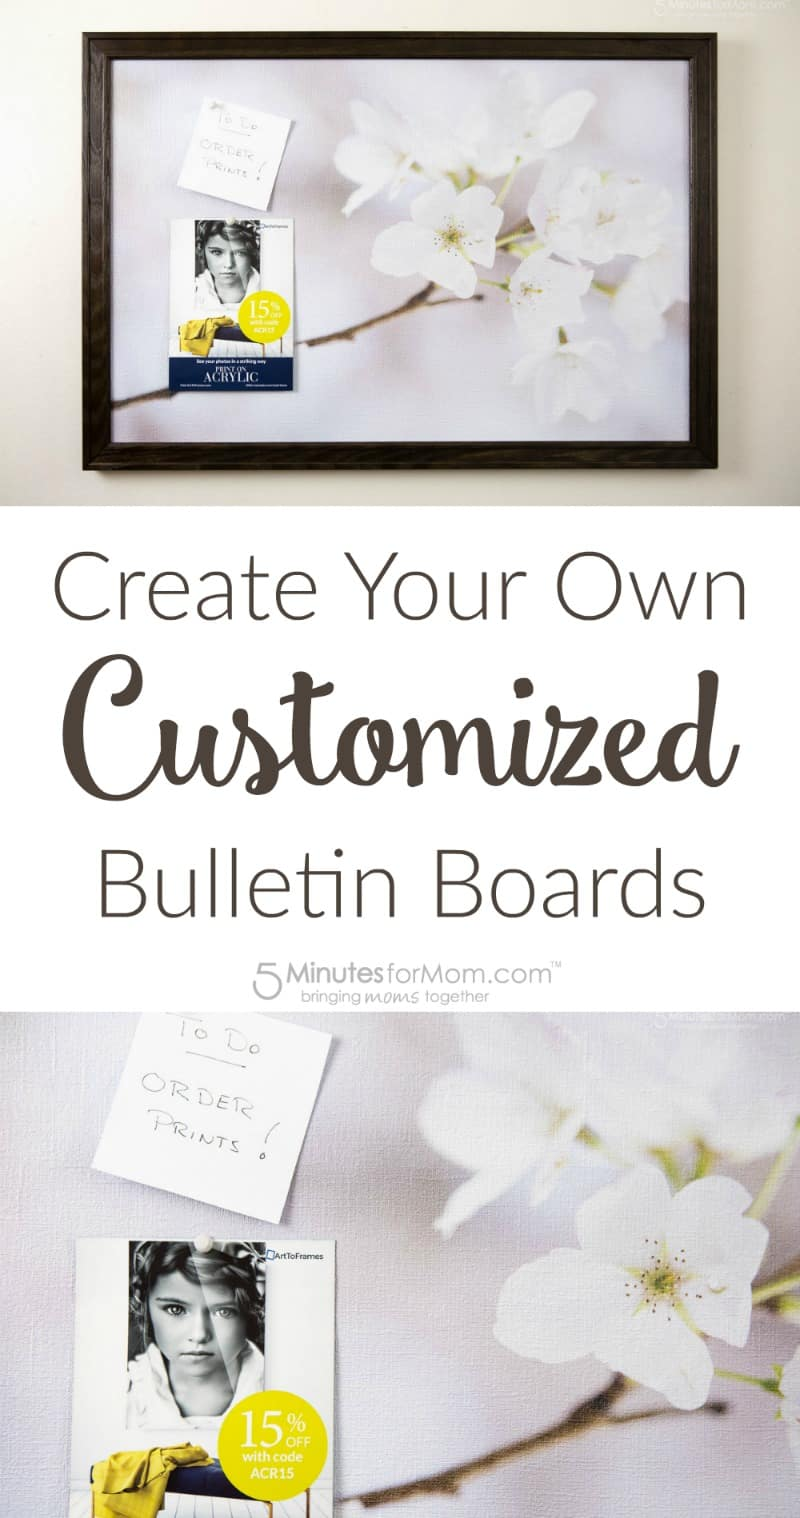 Create Your Own Customized Bulletin Boards